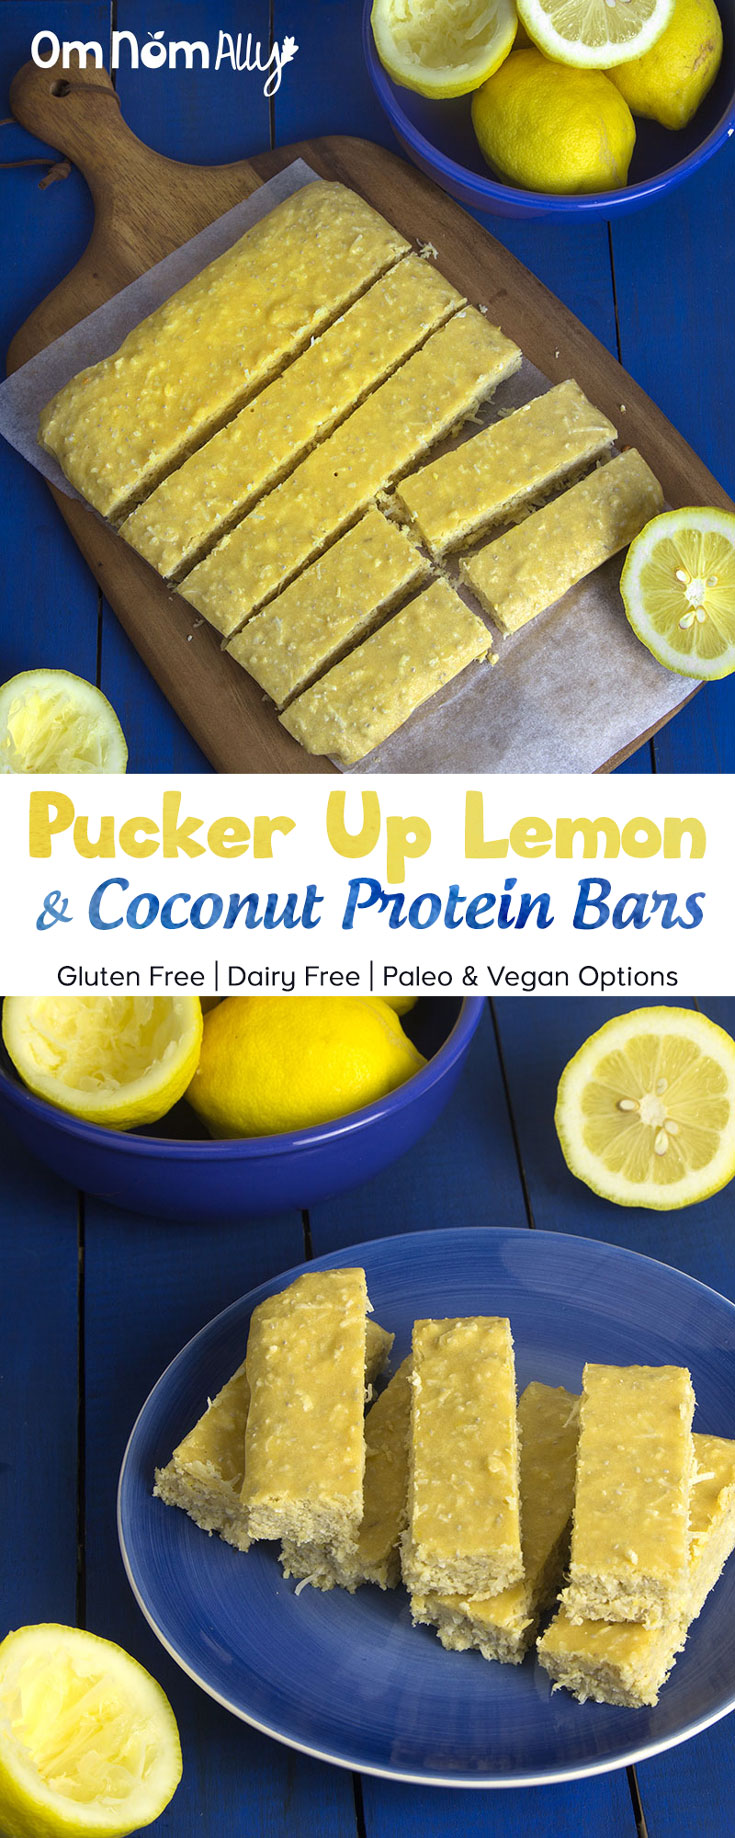 Pucker Up Lemon Protein Bars @OmNomAlly